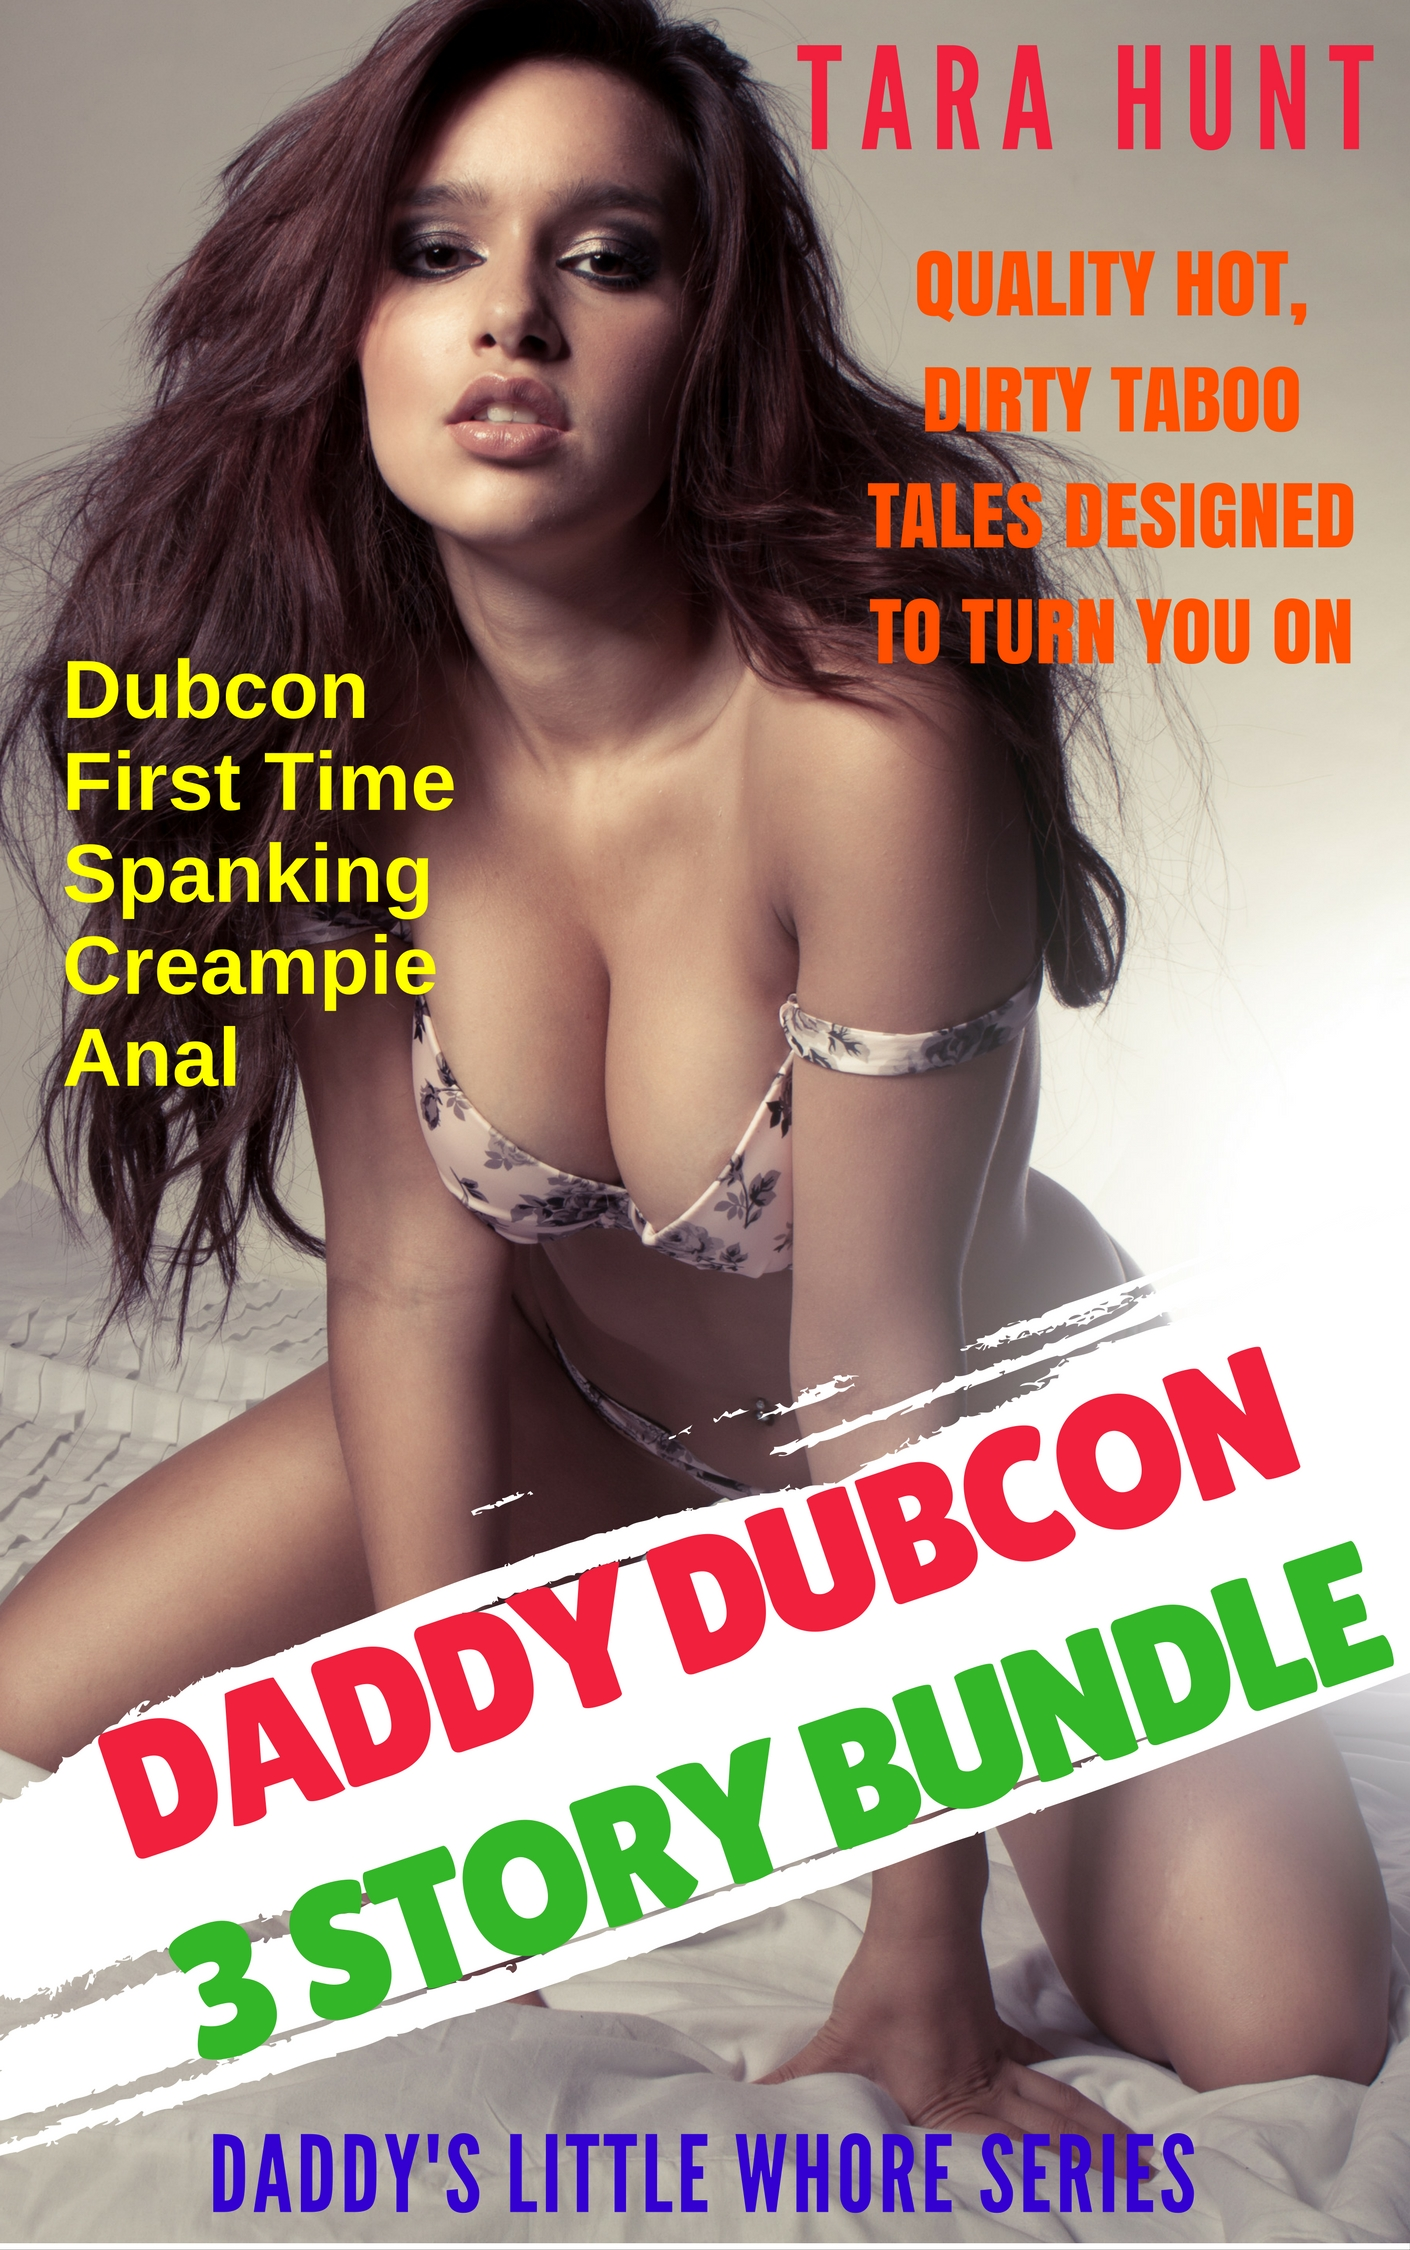 daddy's little whore Daddy Dubcon 3 Story Bundle: Daddy's LIttle Whore Series